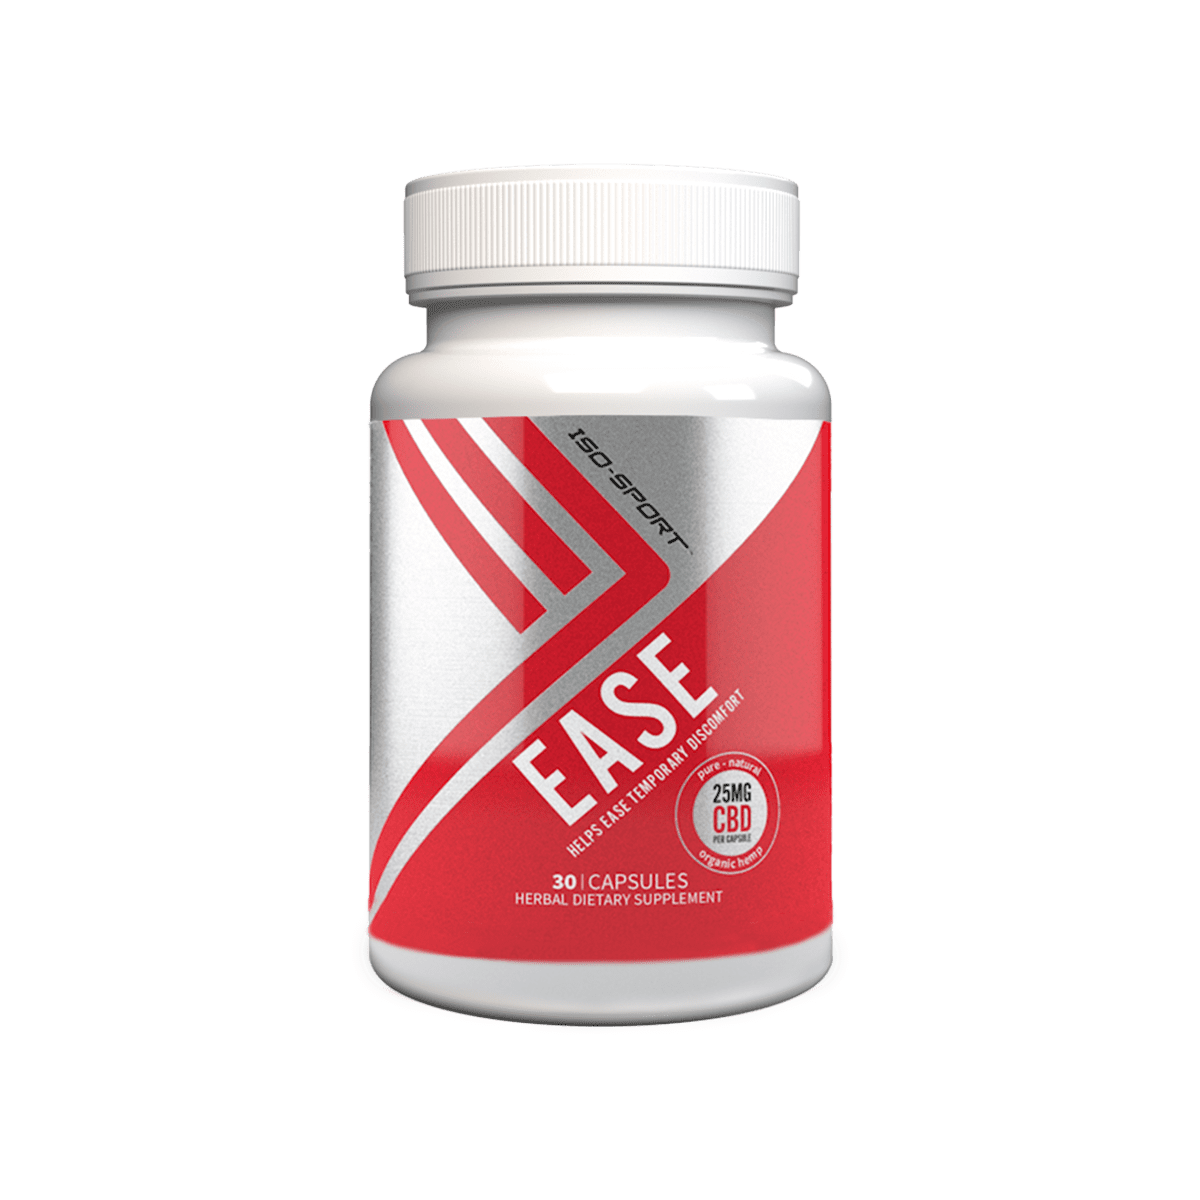 Ease CBD Pain Relief Capsules Isodiol